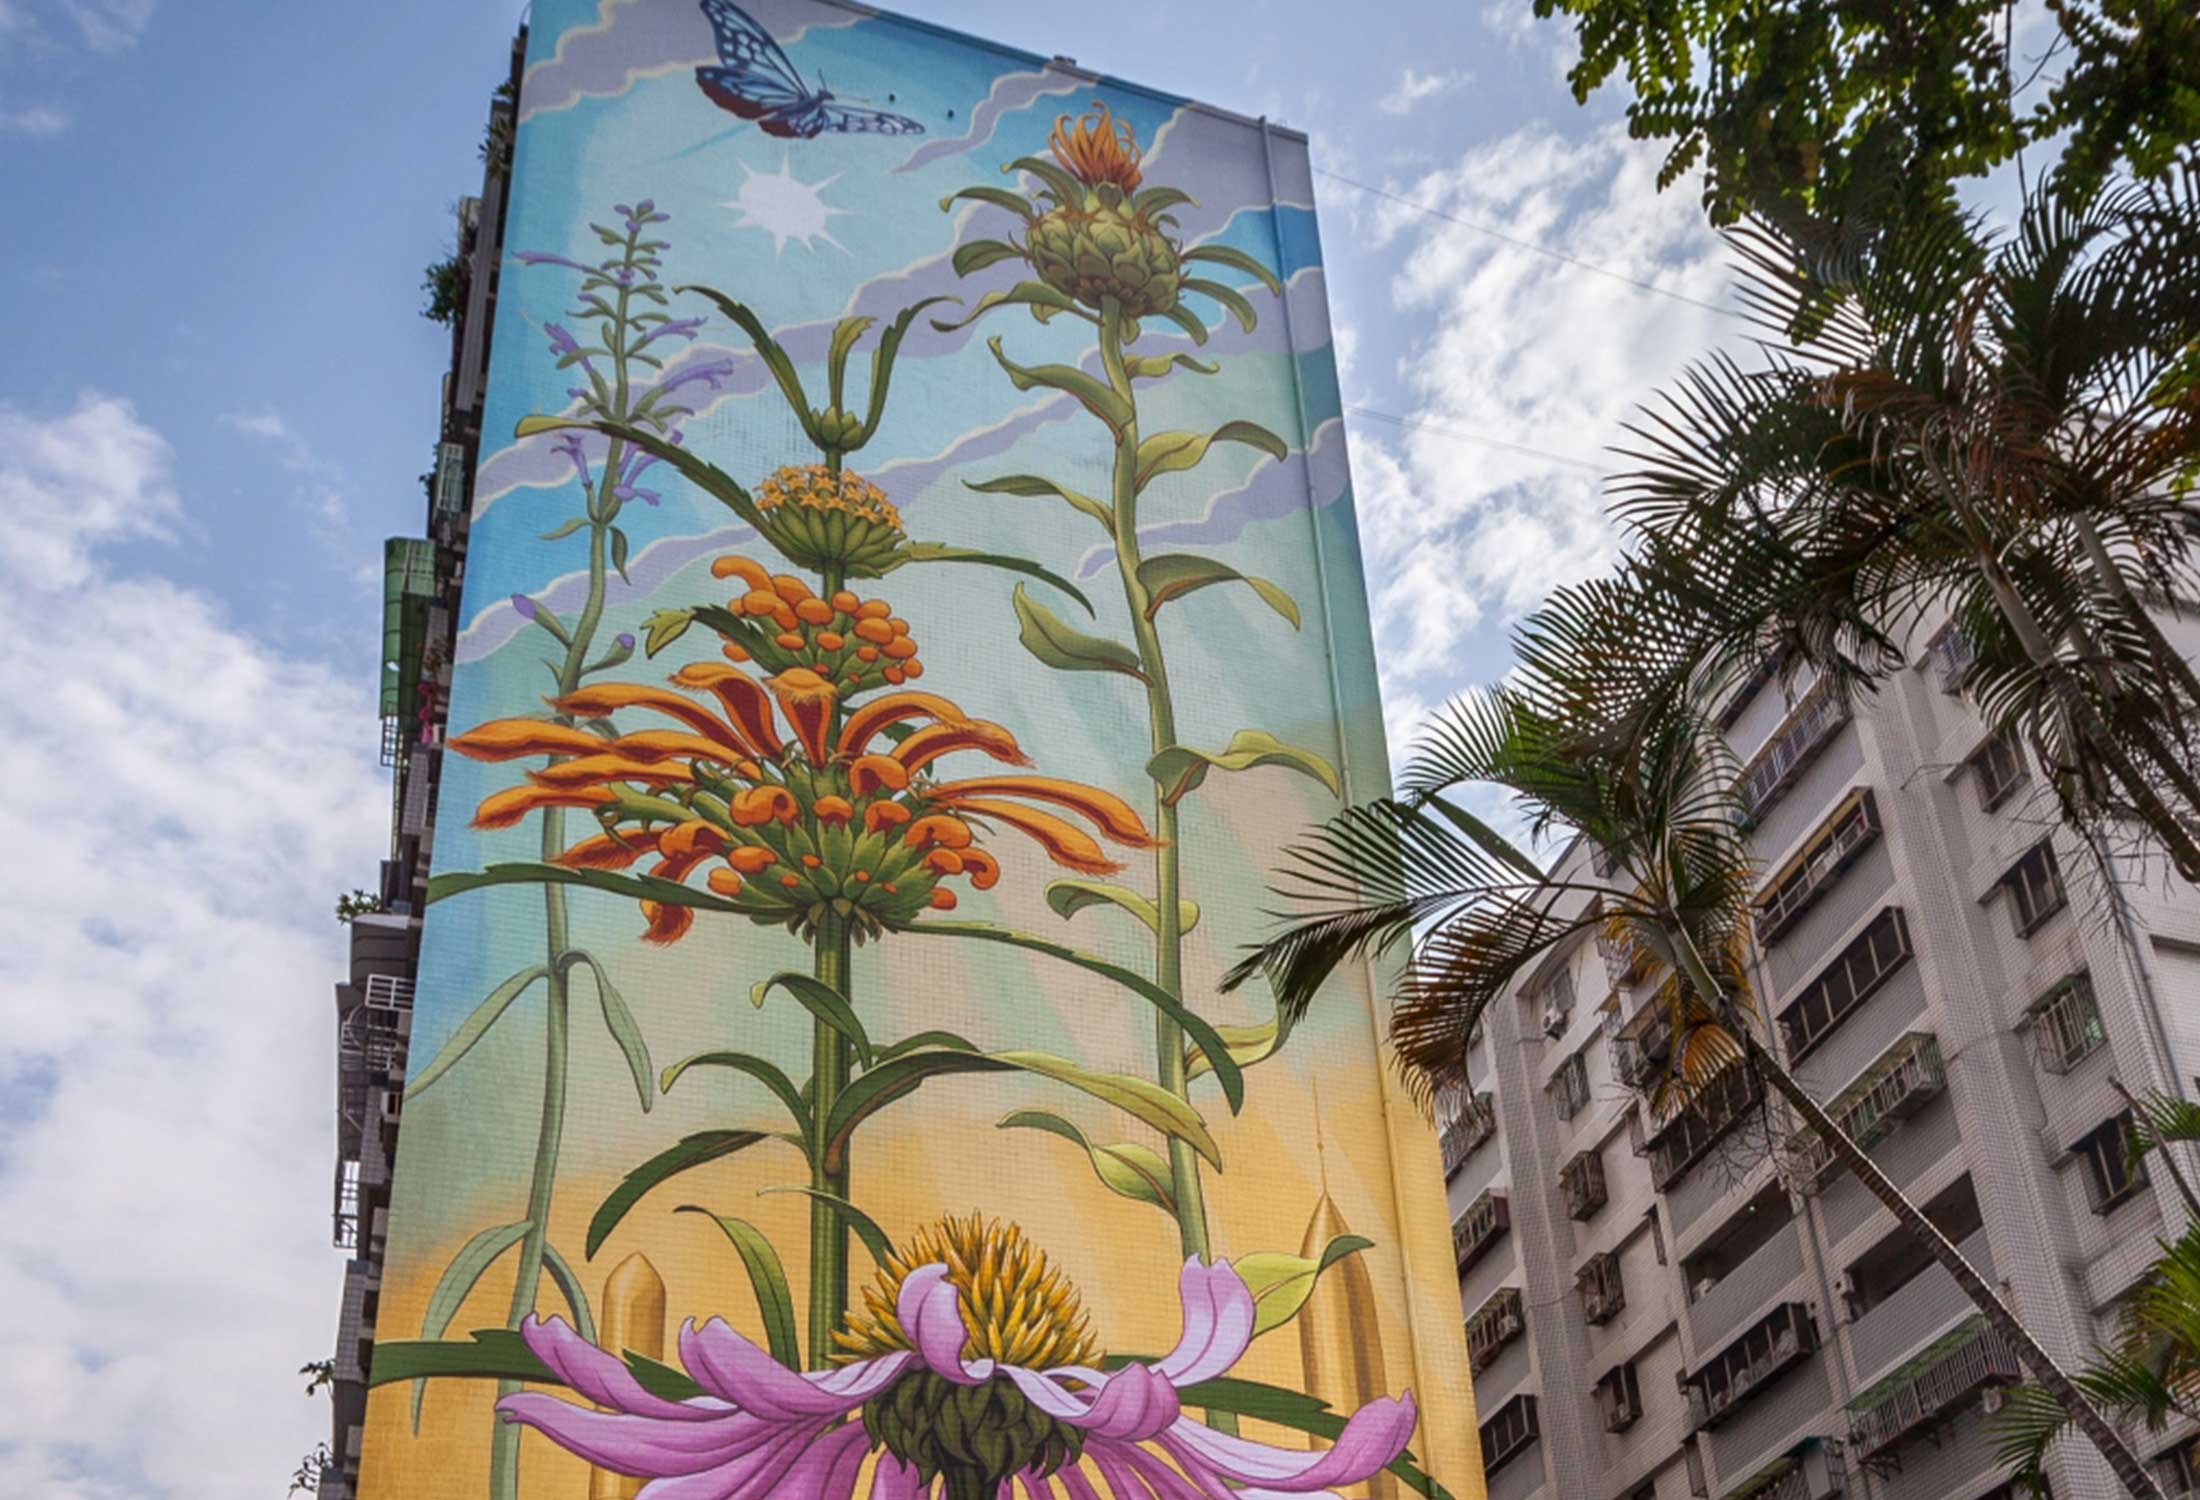 Outgrowing by Mona Caron is an enchanting and iconic mural that is a powerful example of art in public places.